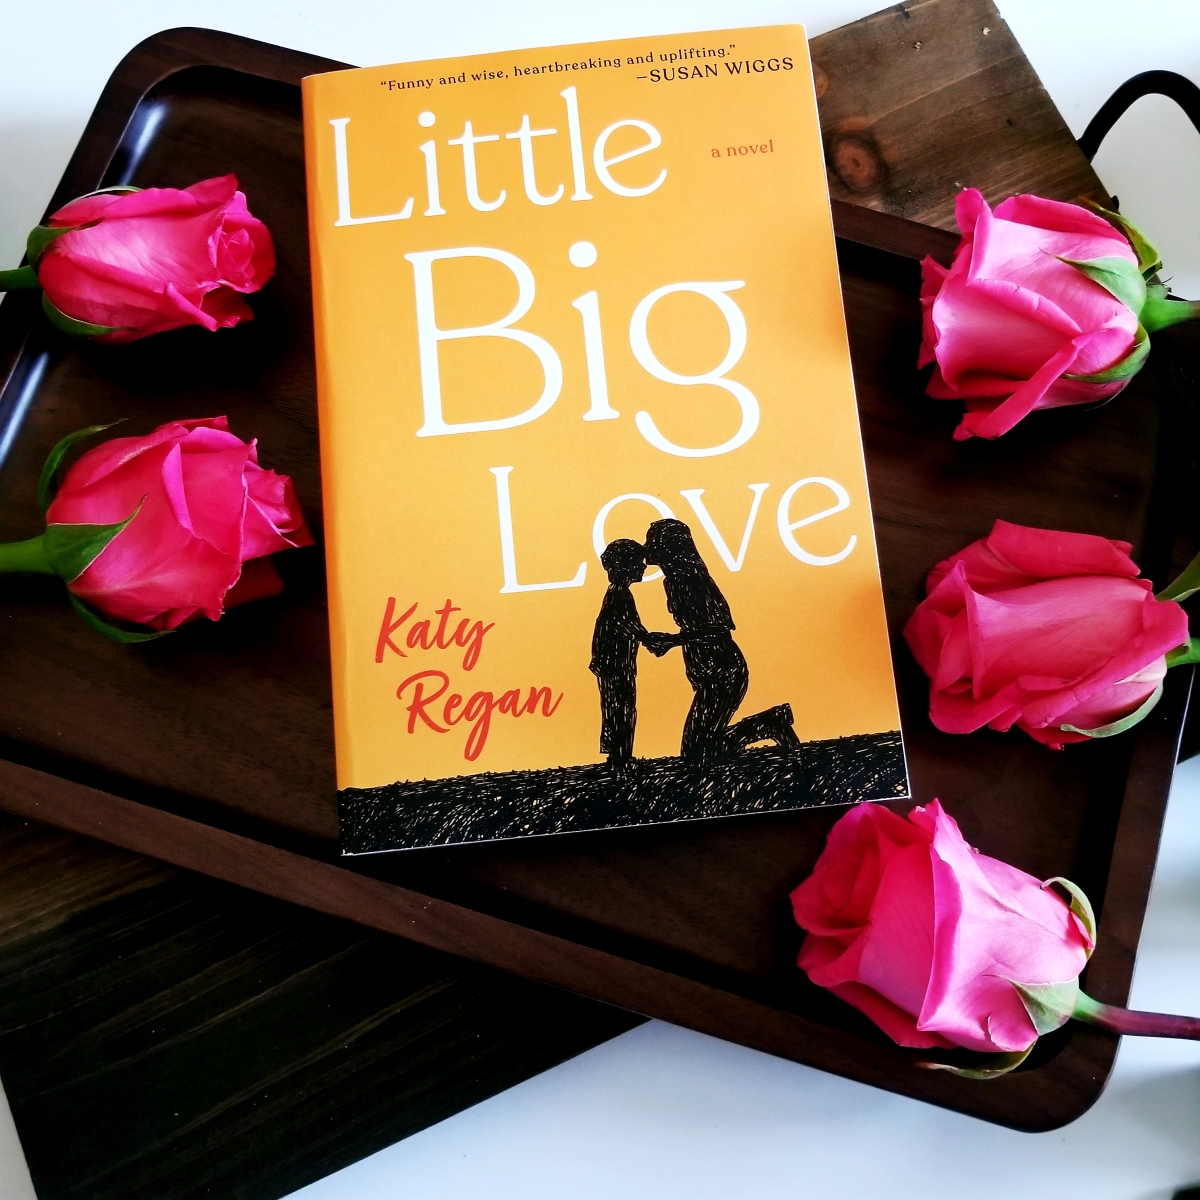 Little Big Love by Katy Regan #bookreview #tarheelreader #thrlittlebiglove @katyreganwrites @berkleypub #littlebiglove #blogtour #bookgiveaway